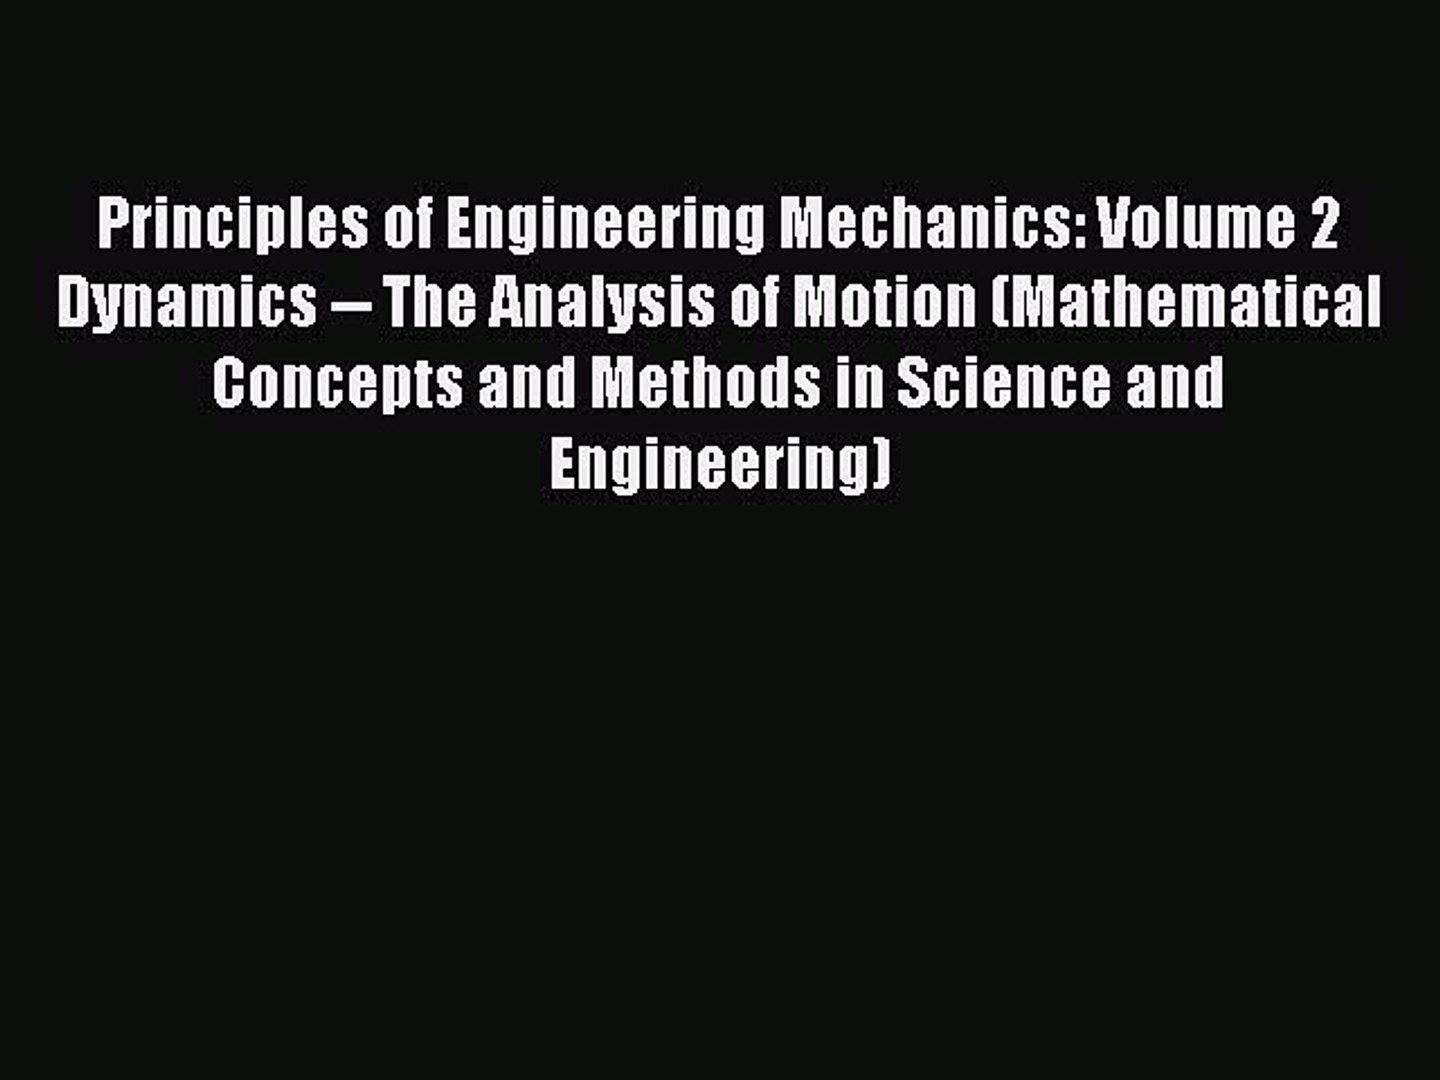 Read Principles of Engineering Mechanics: Volume 2 Dynamics -- The Analysis  of Motion (Mathematical